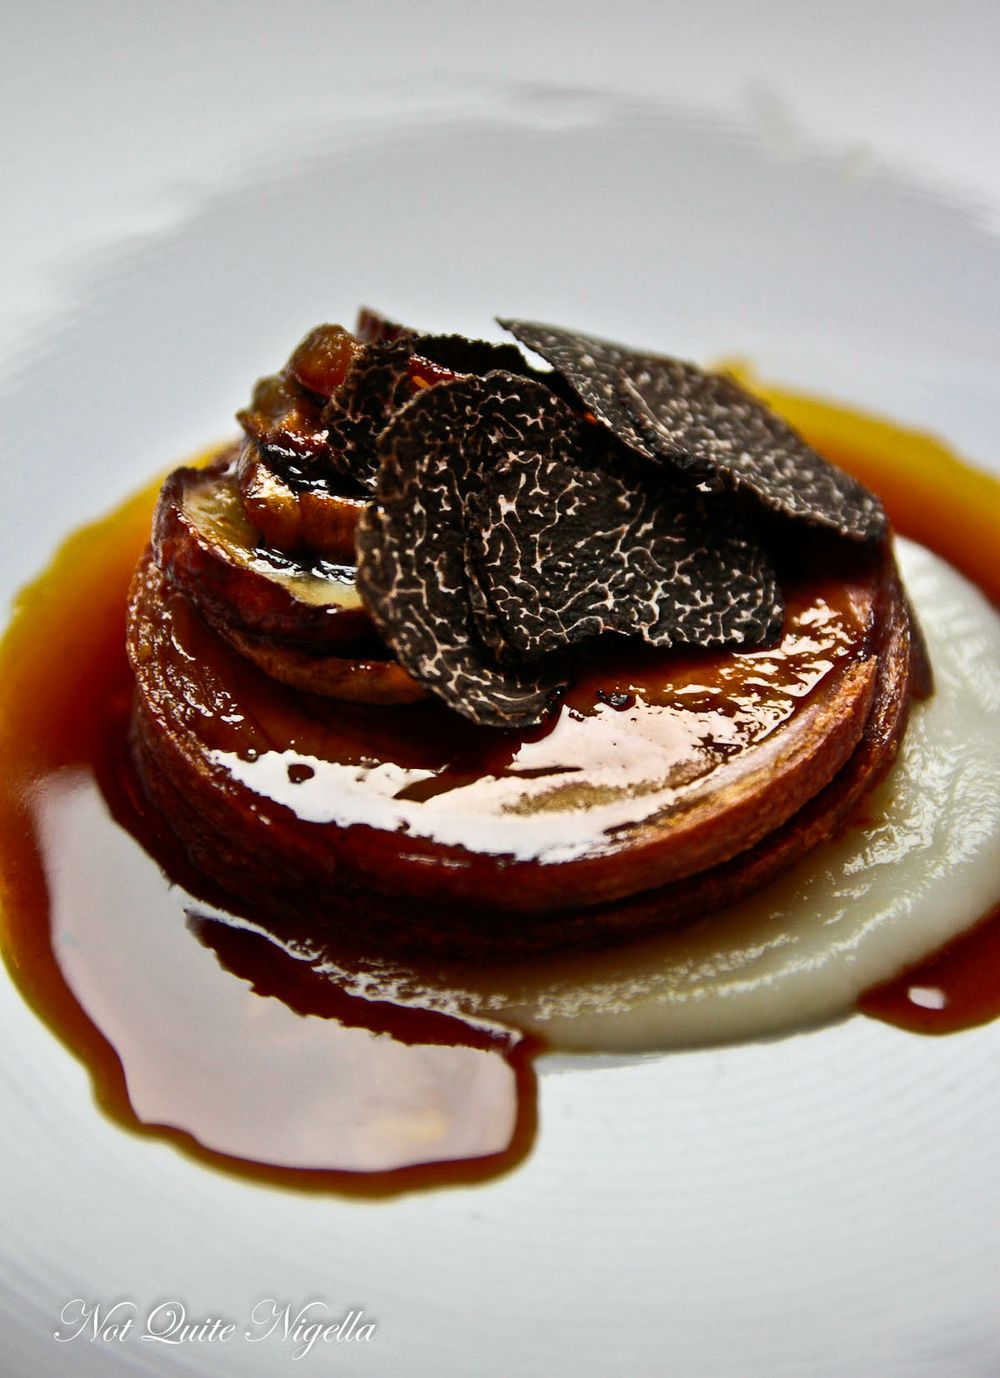 rockpool-on-george-truffle-9-2